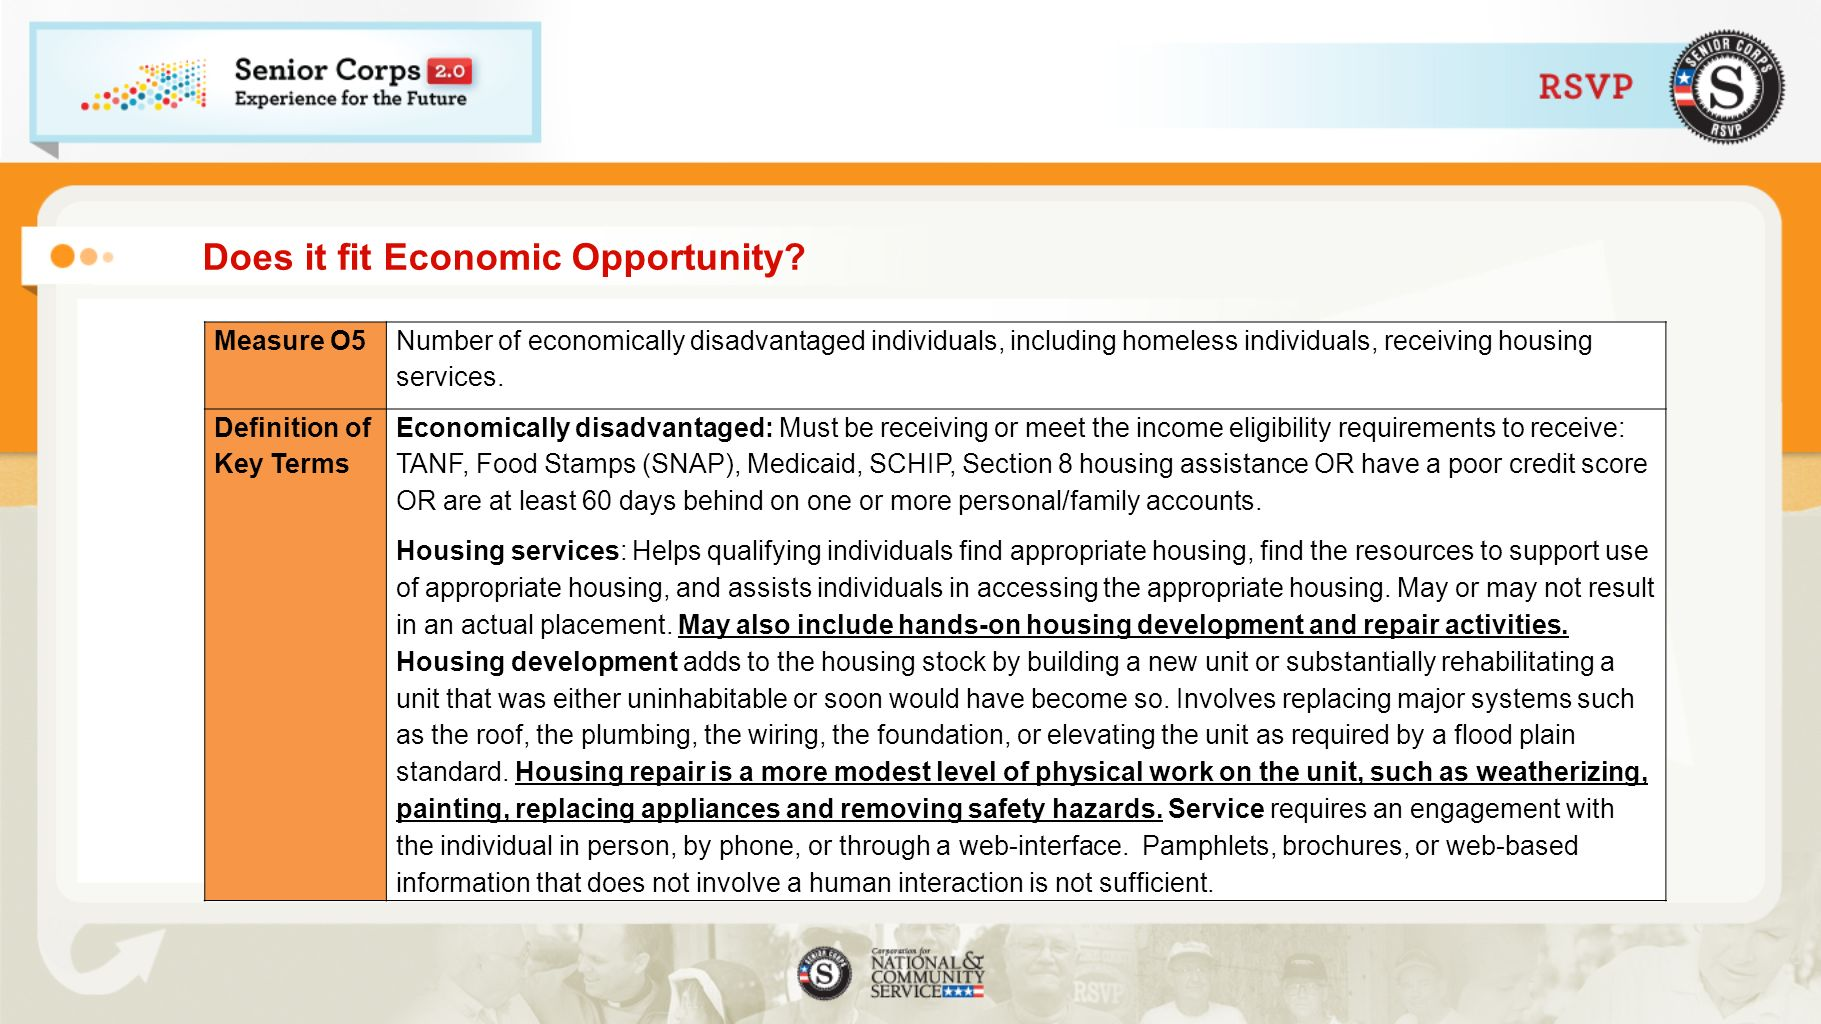 Does it fit Economic Opportunity.